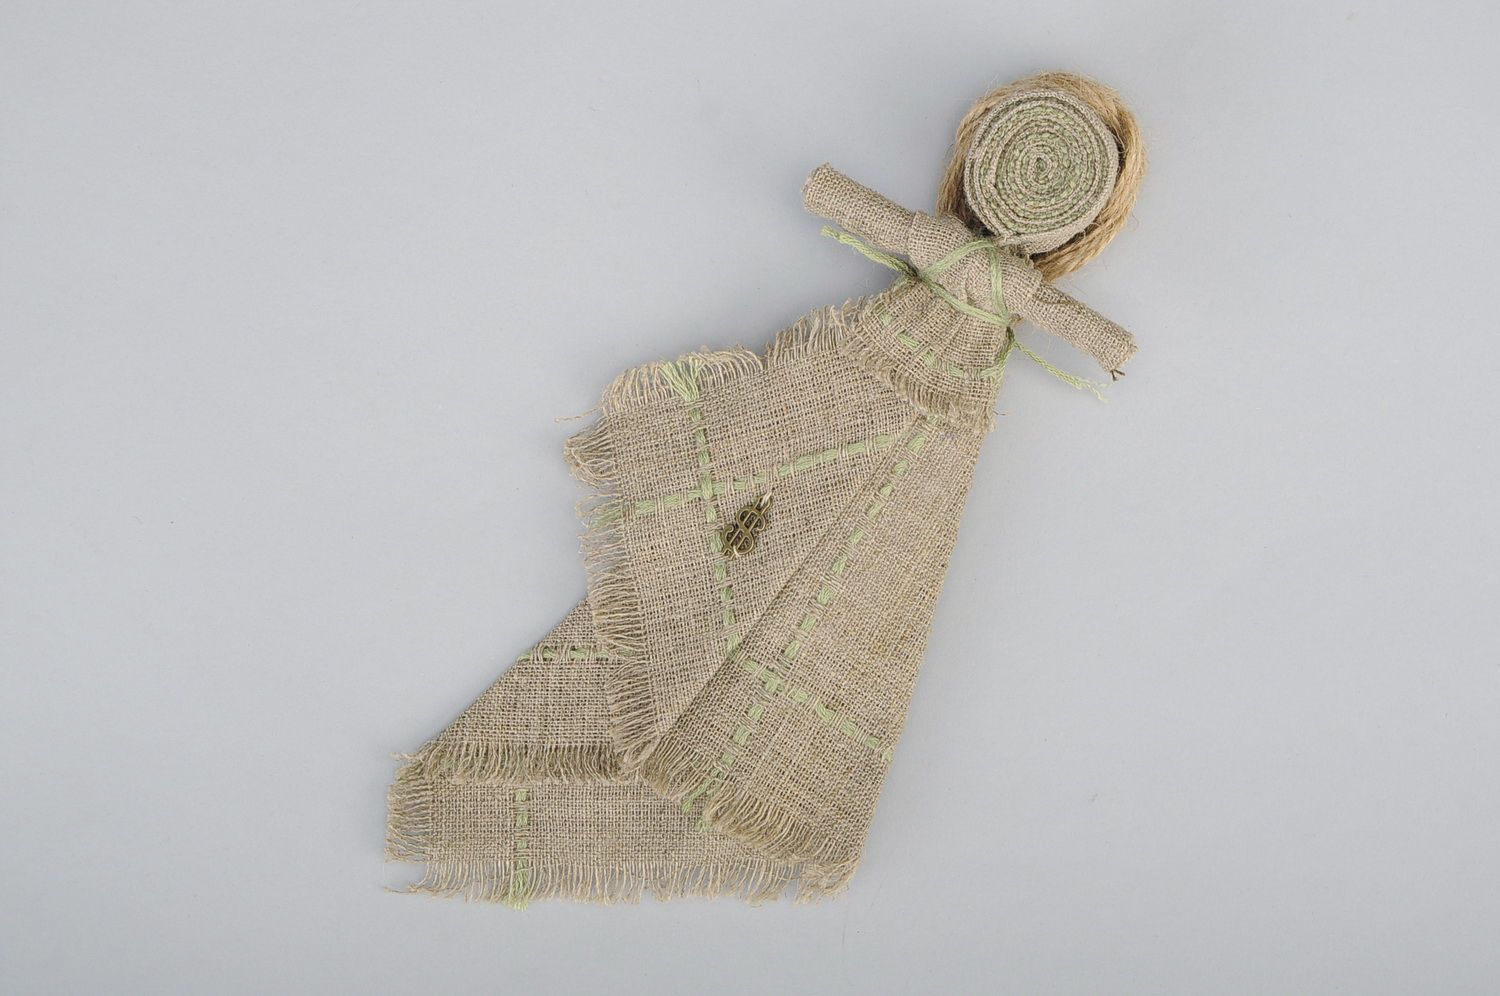 Talisman doll for attracting money  photo 4